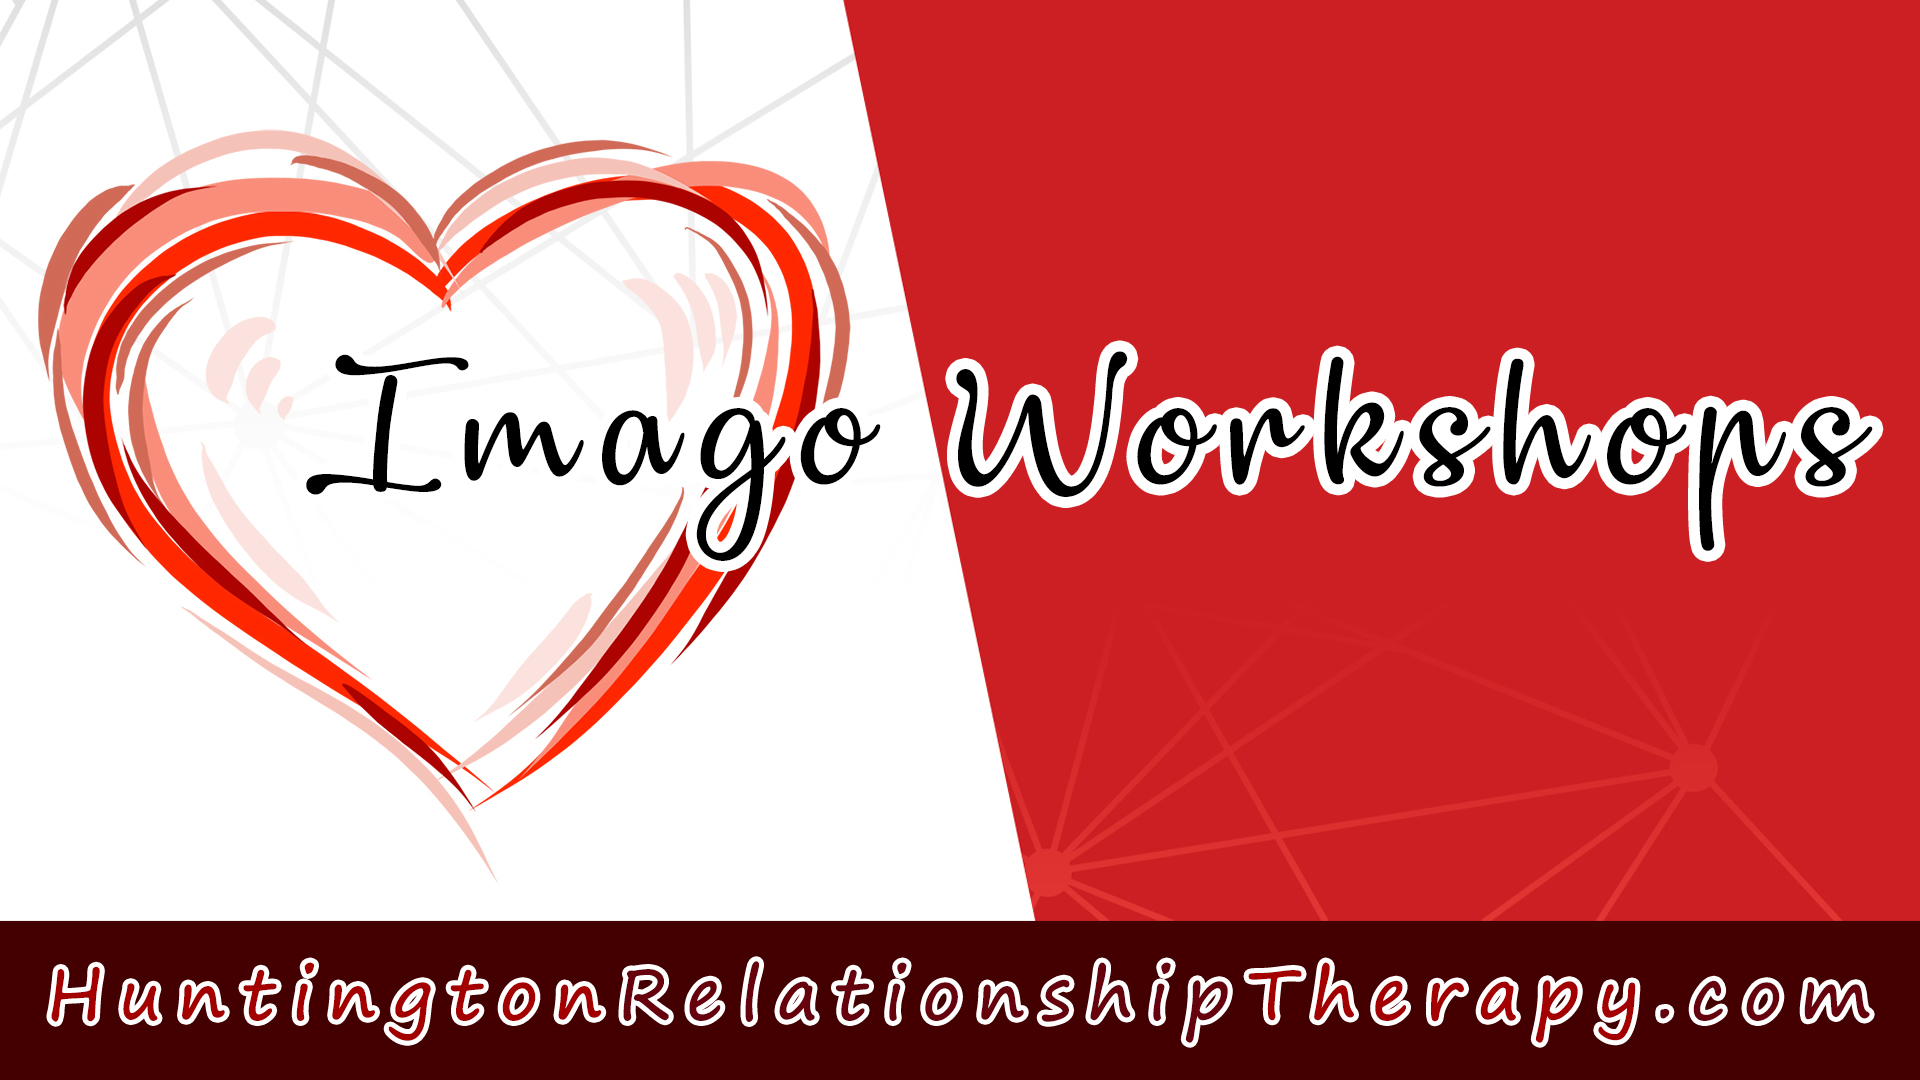 Imago relationship therapy workshops